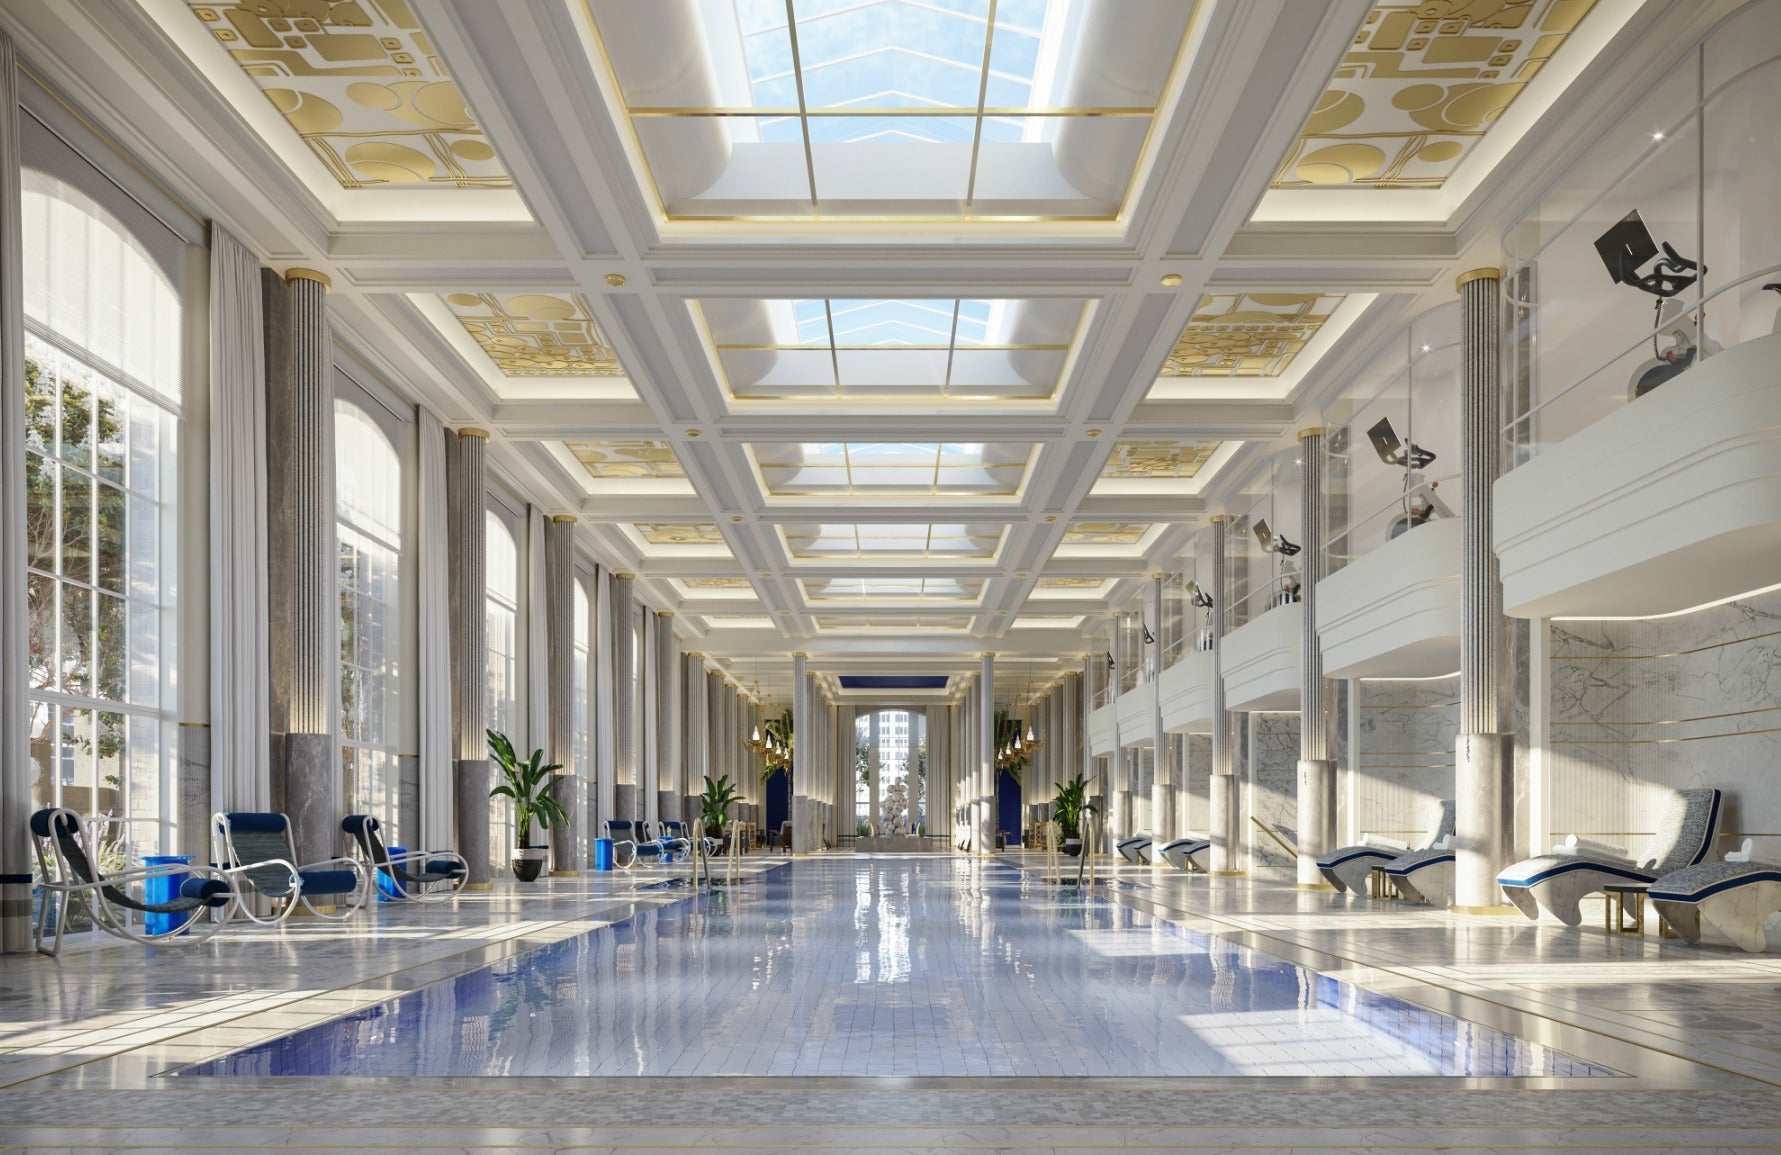 Waldorf Astoria pool | Luxury New York hotels | Read more in The Luxurist